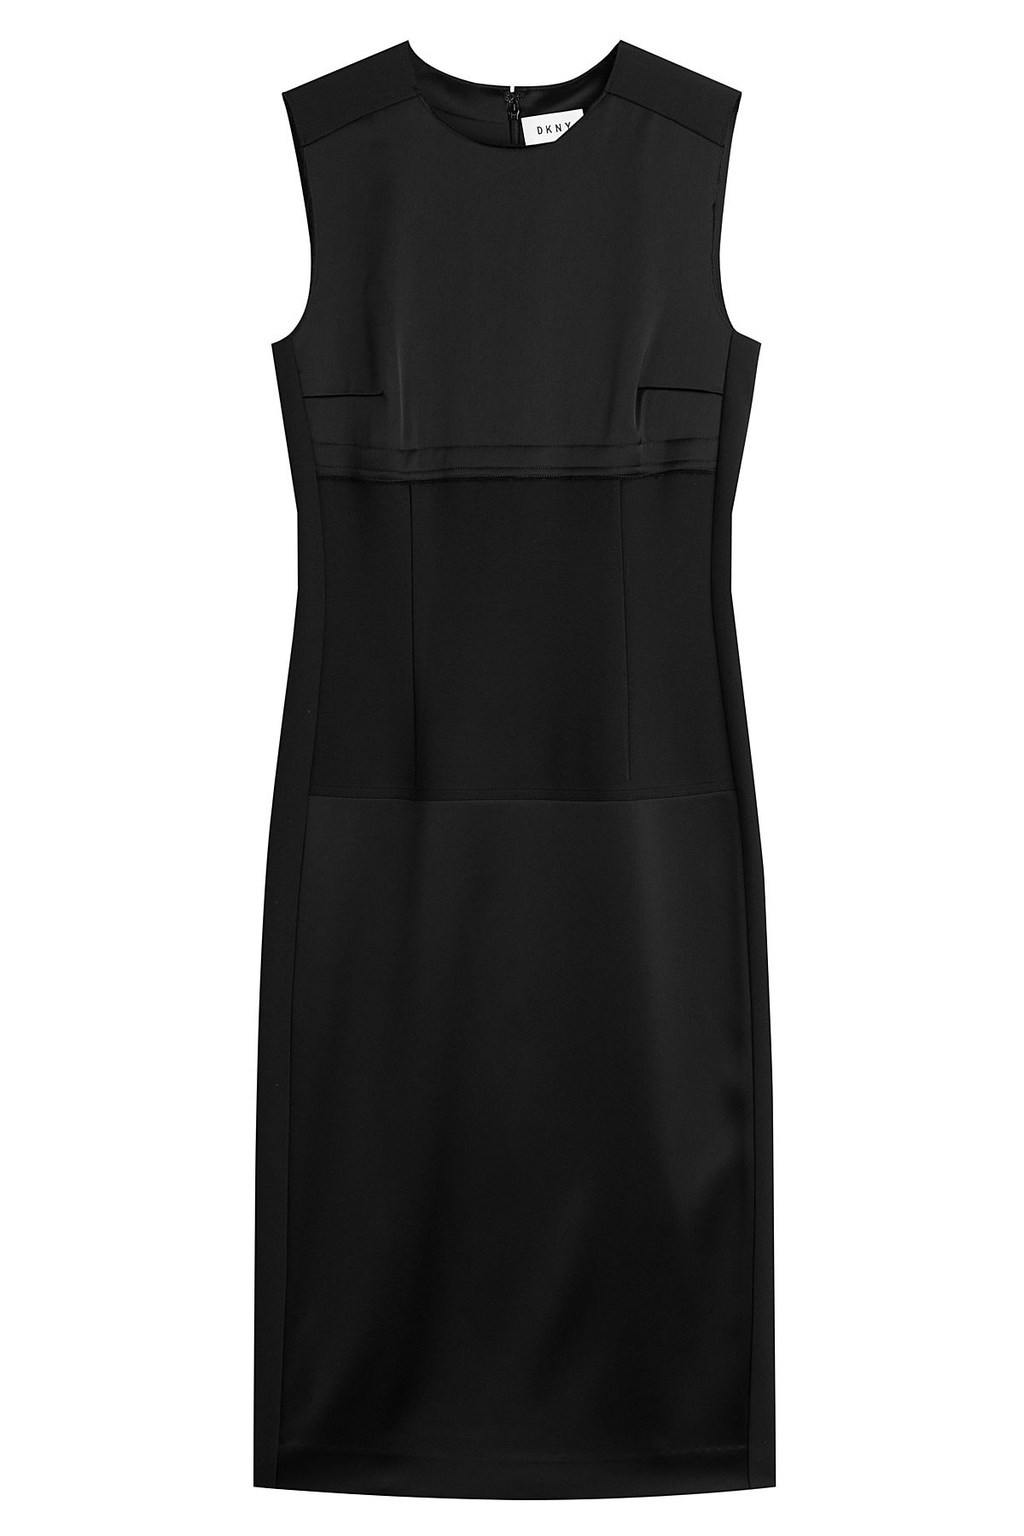 Dress With Satin - style: shift; length: below the knee; pattern: plain; sleeve style: sleeveless; predominant colour: black; occasions: evening; fit: body skimming; fibres: polyester/polyamide - mix; neckline: crew; sleeve length: sleeveless; texture group: structured shiny - satin/tafetta/silk etc.; pattern type: fabric; season: a/w 2016; wardrobe: event